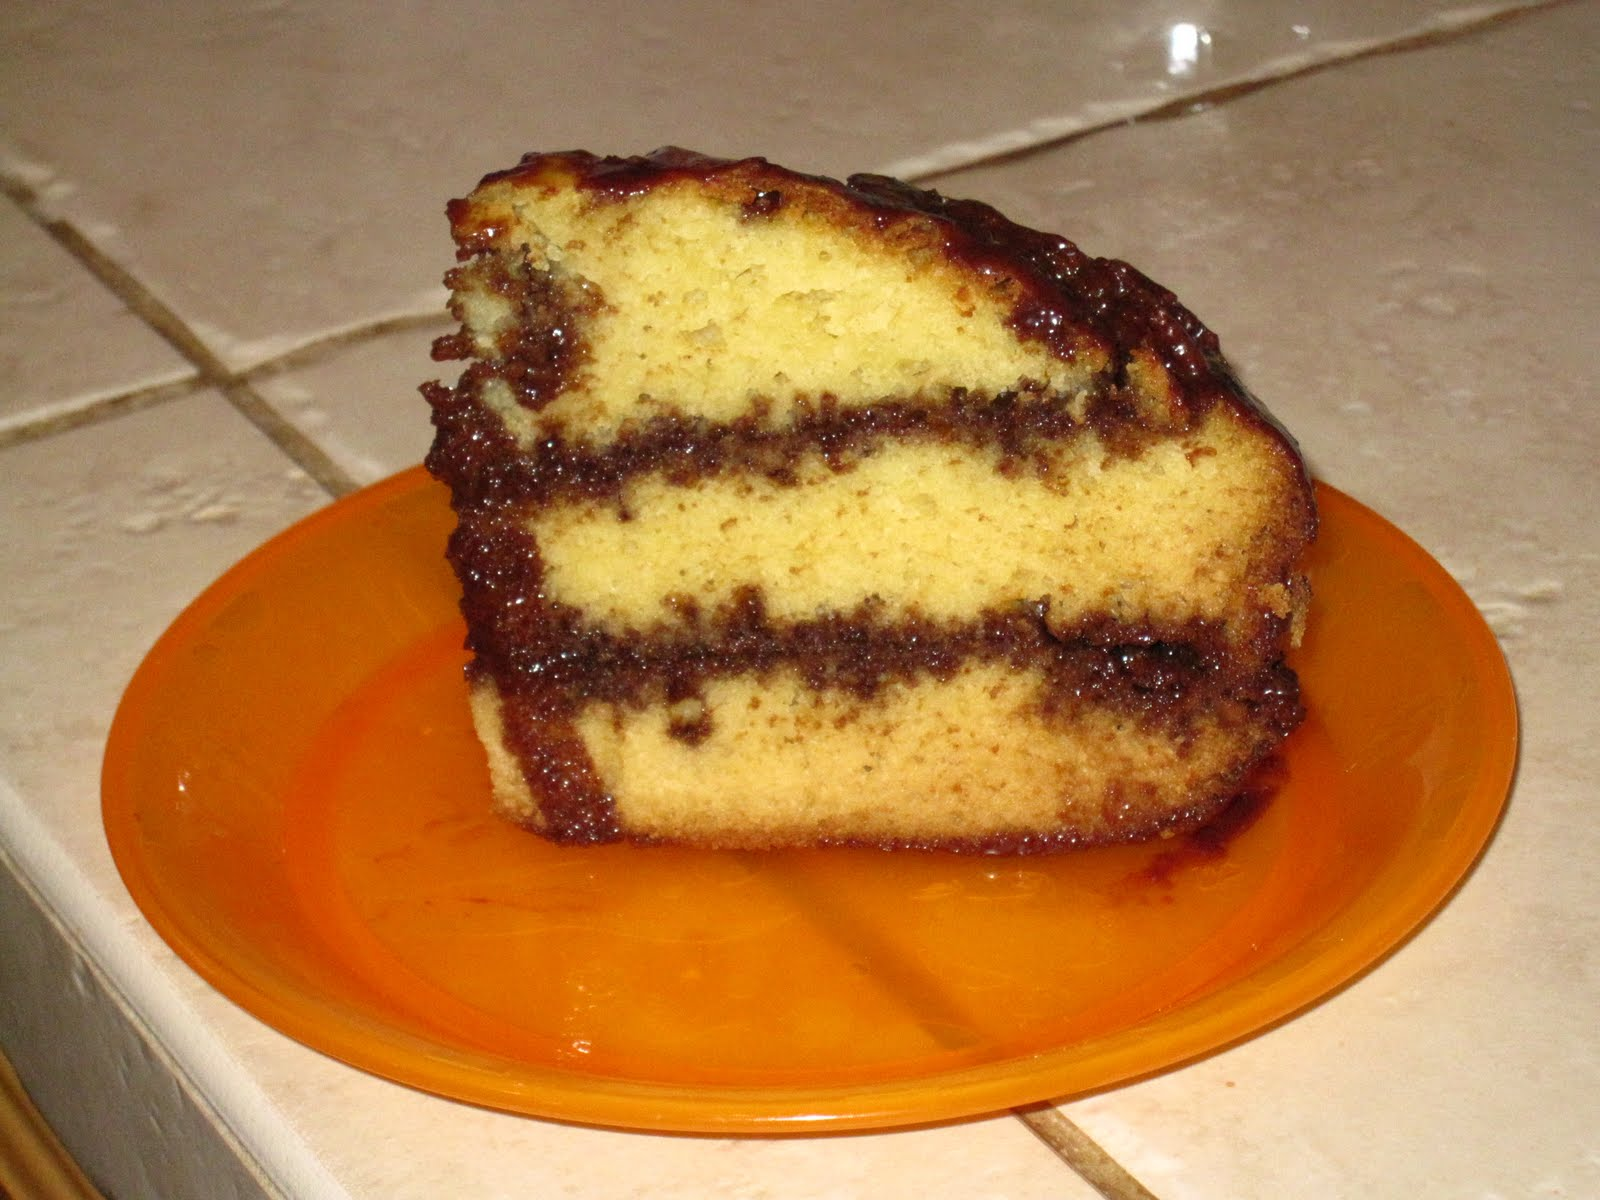 ... Chiffon Cake & Old Fashion Yellow Butter Cake with Chocolate Frosting